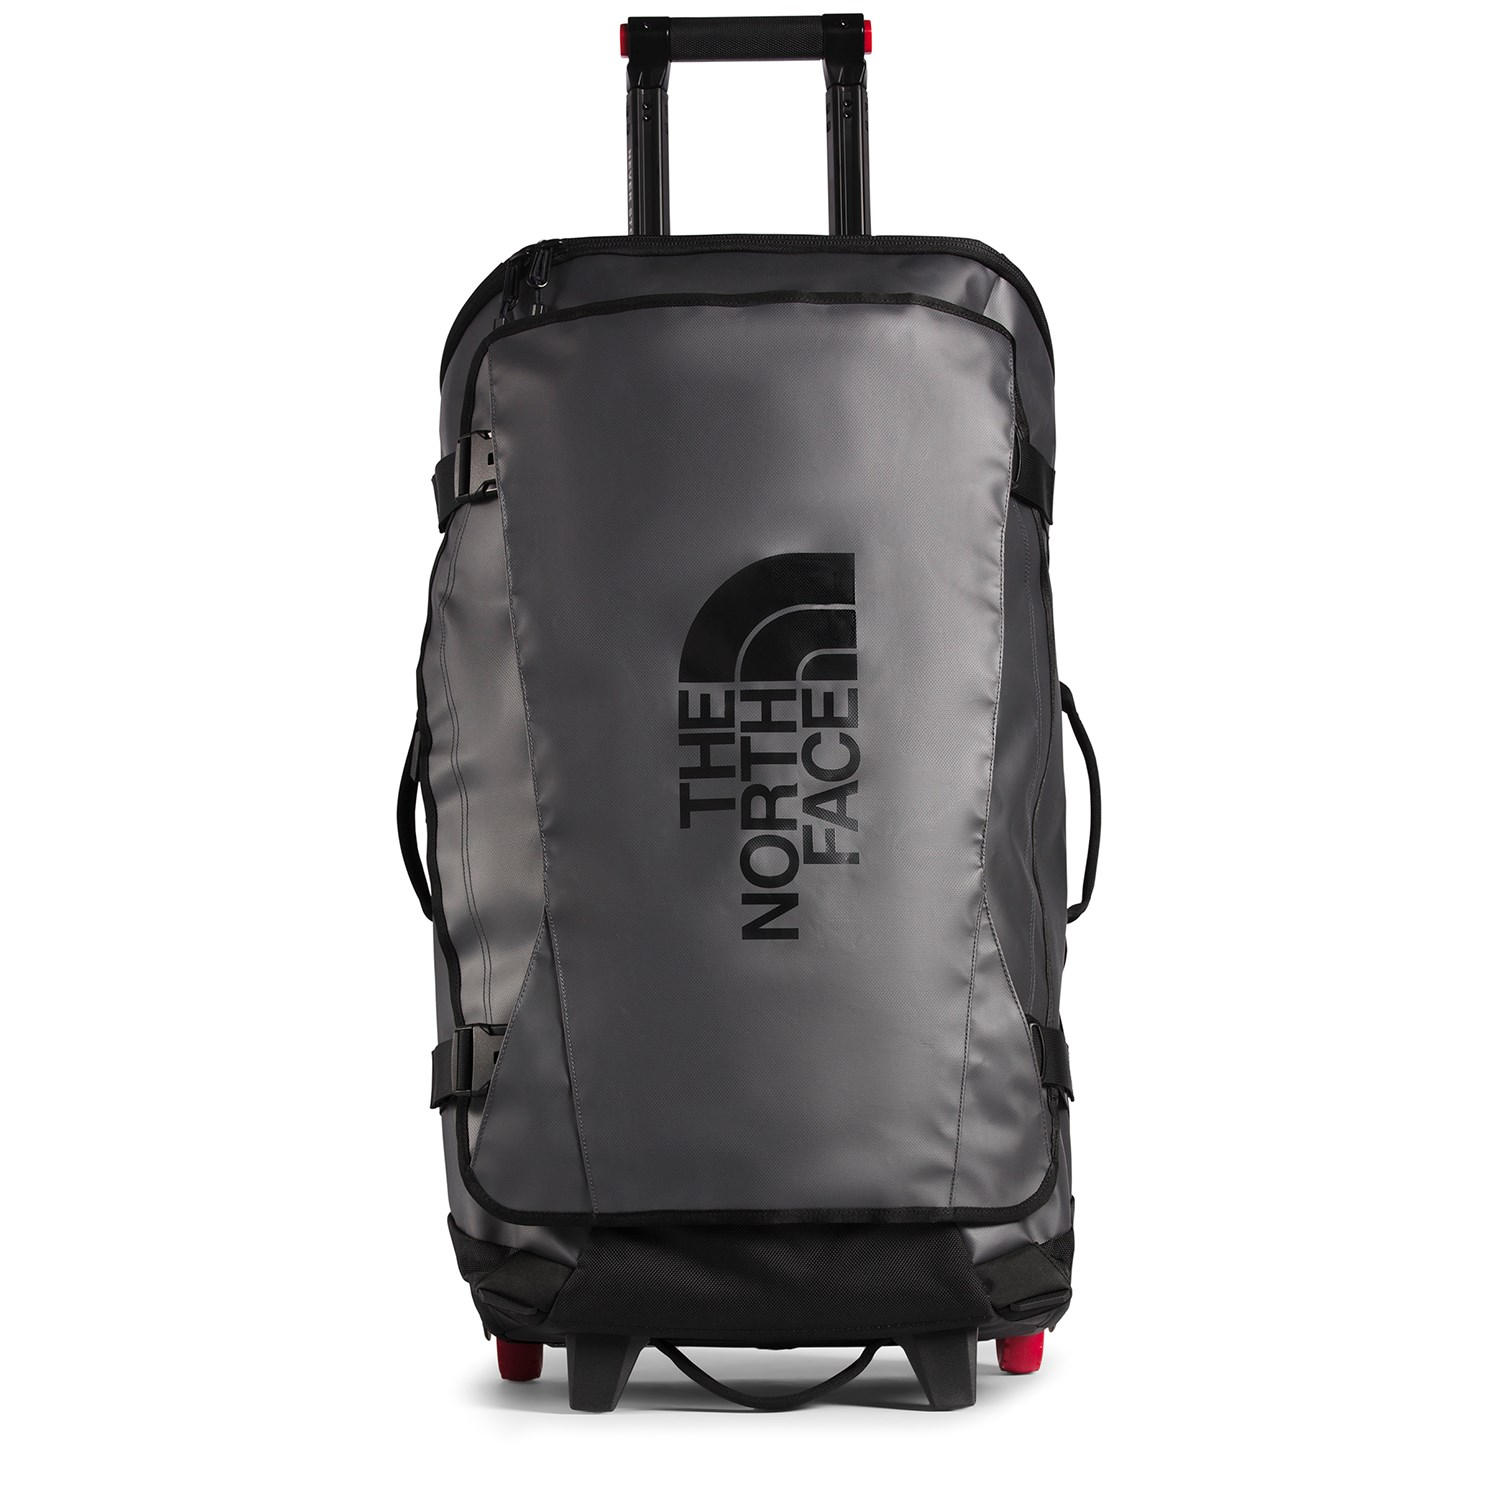 930096f3b The North Face Rolling Thunder Bag - 30